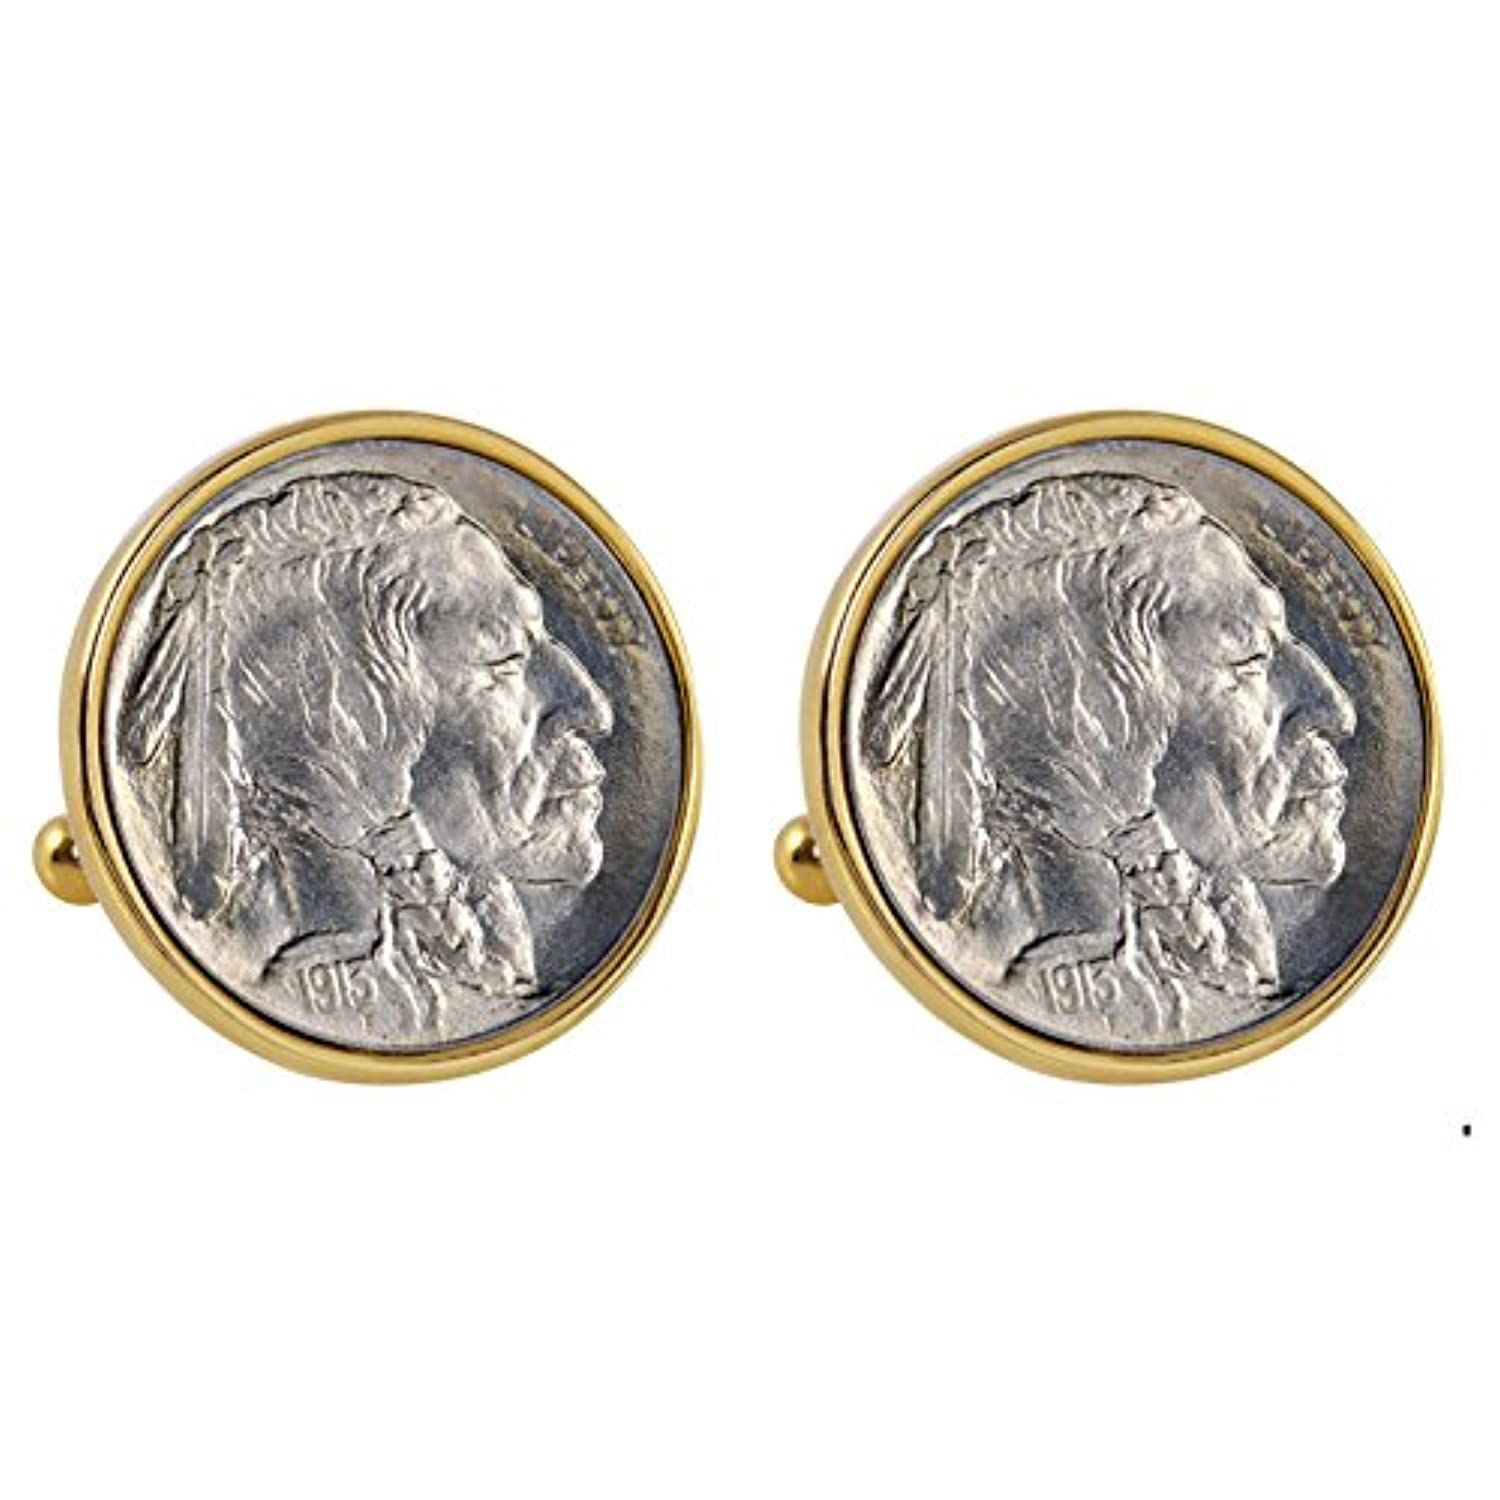 Smithsonian Institution 1913 first-year-of-issueバッファローニッケルゴールドトーンベゼルCoin Cuff Links